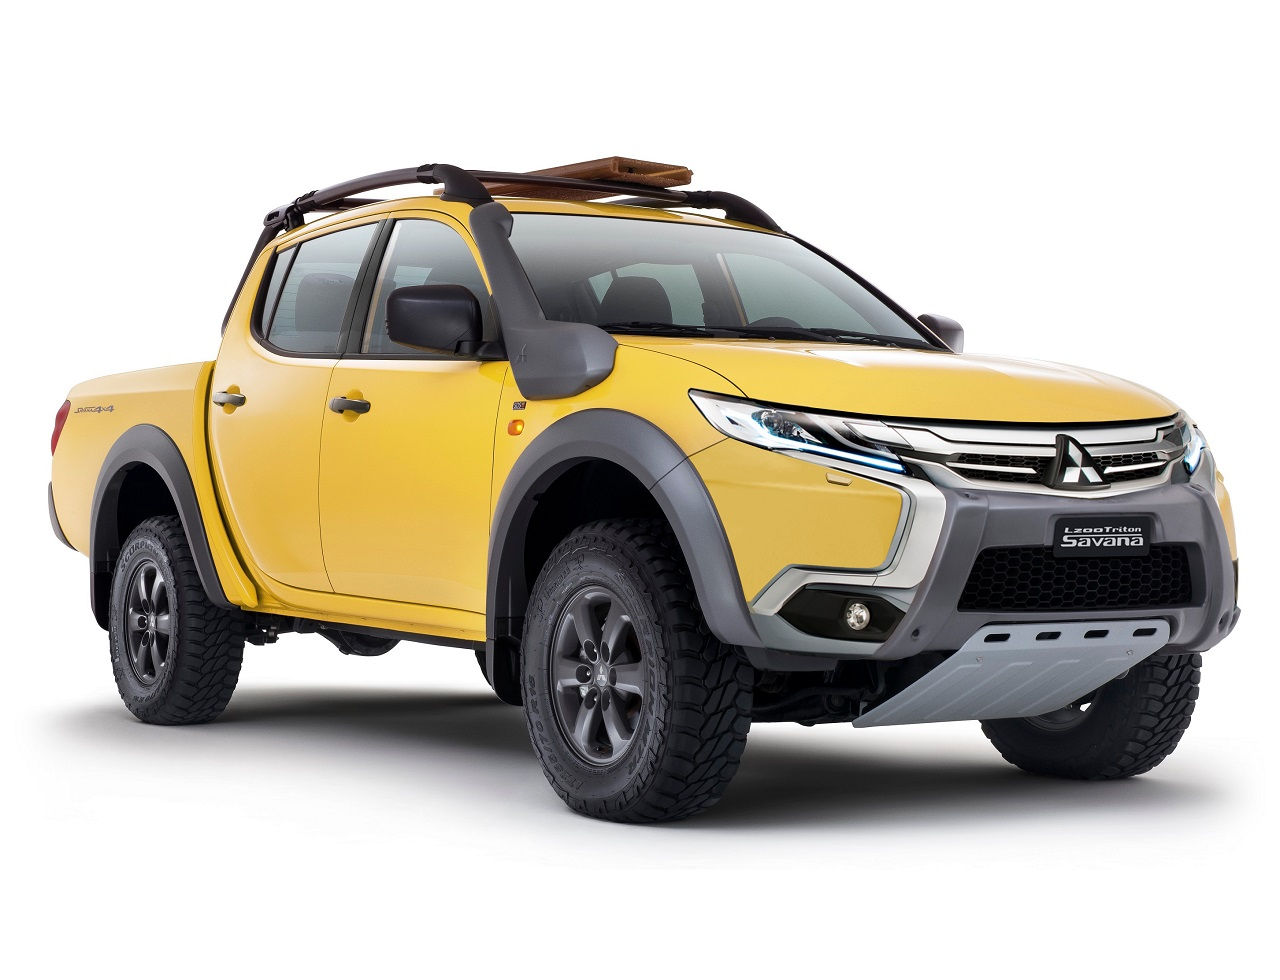 Dynamic Shield Face - Mitsubishi L200 Triton Savana !? ・・・・